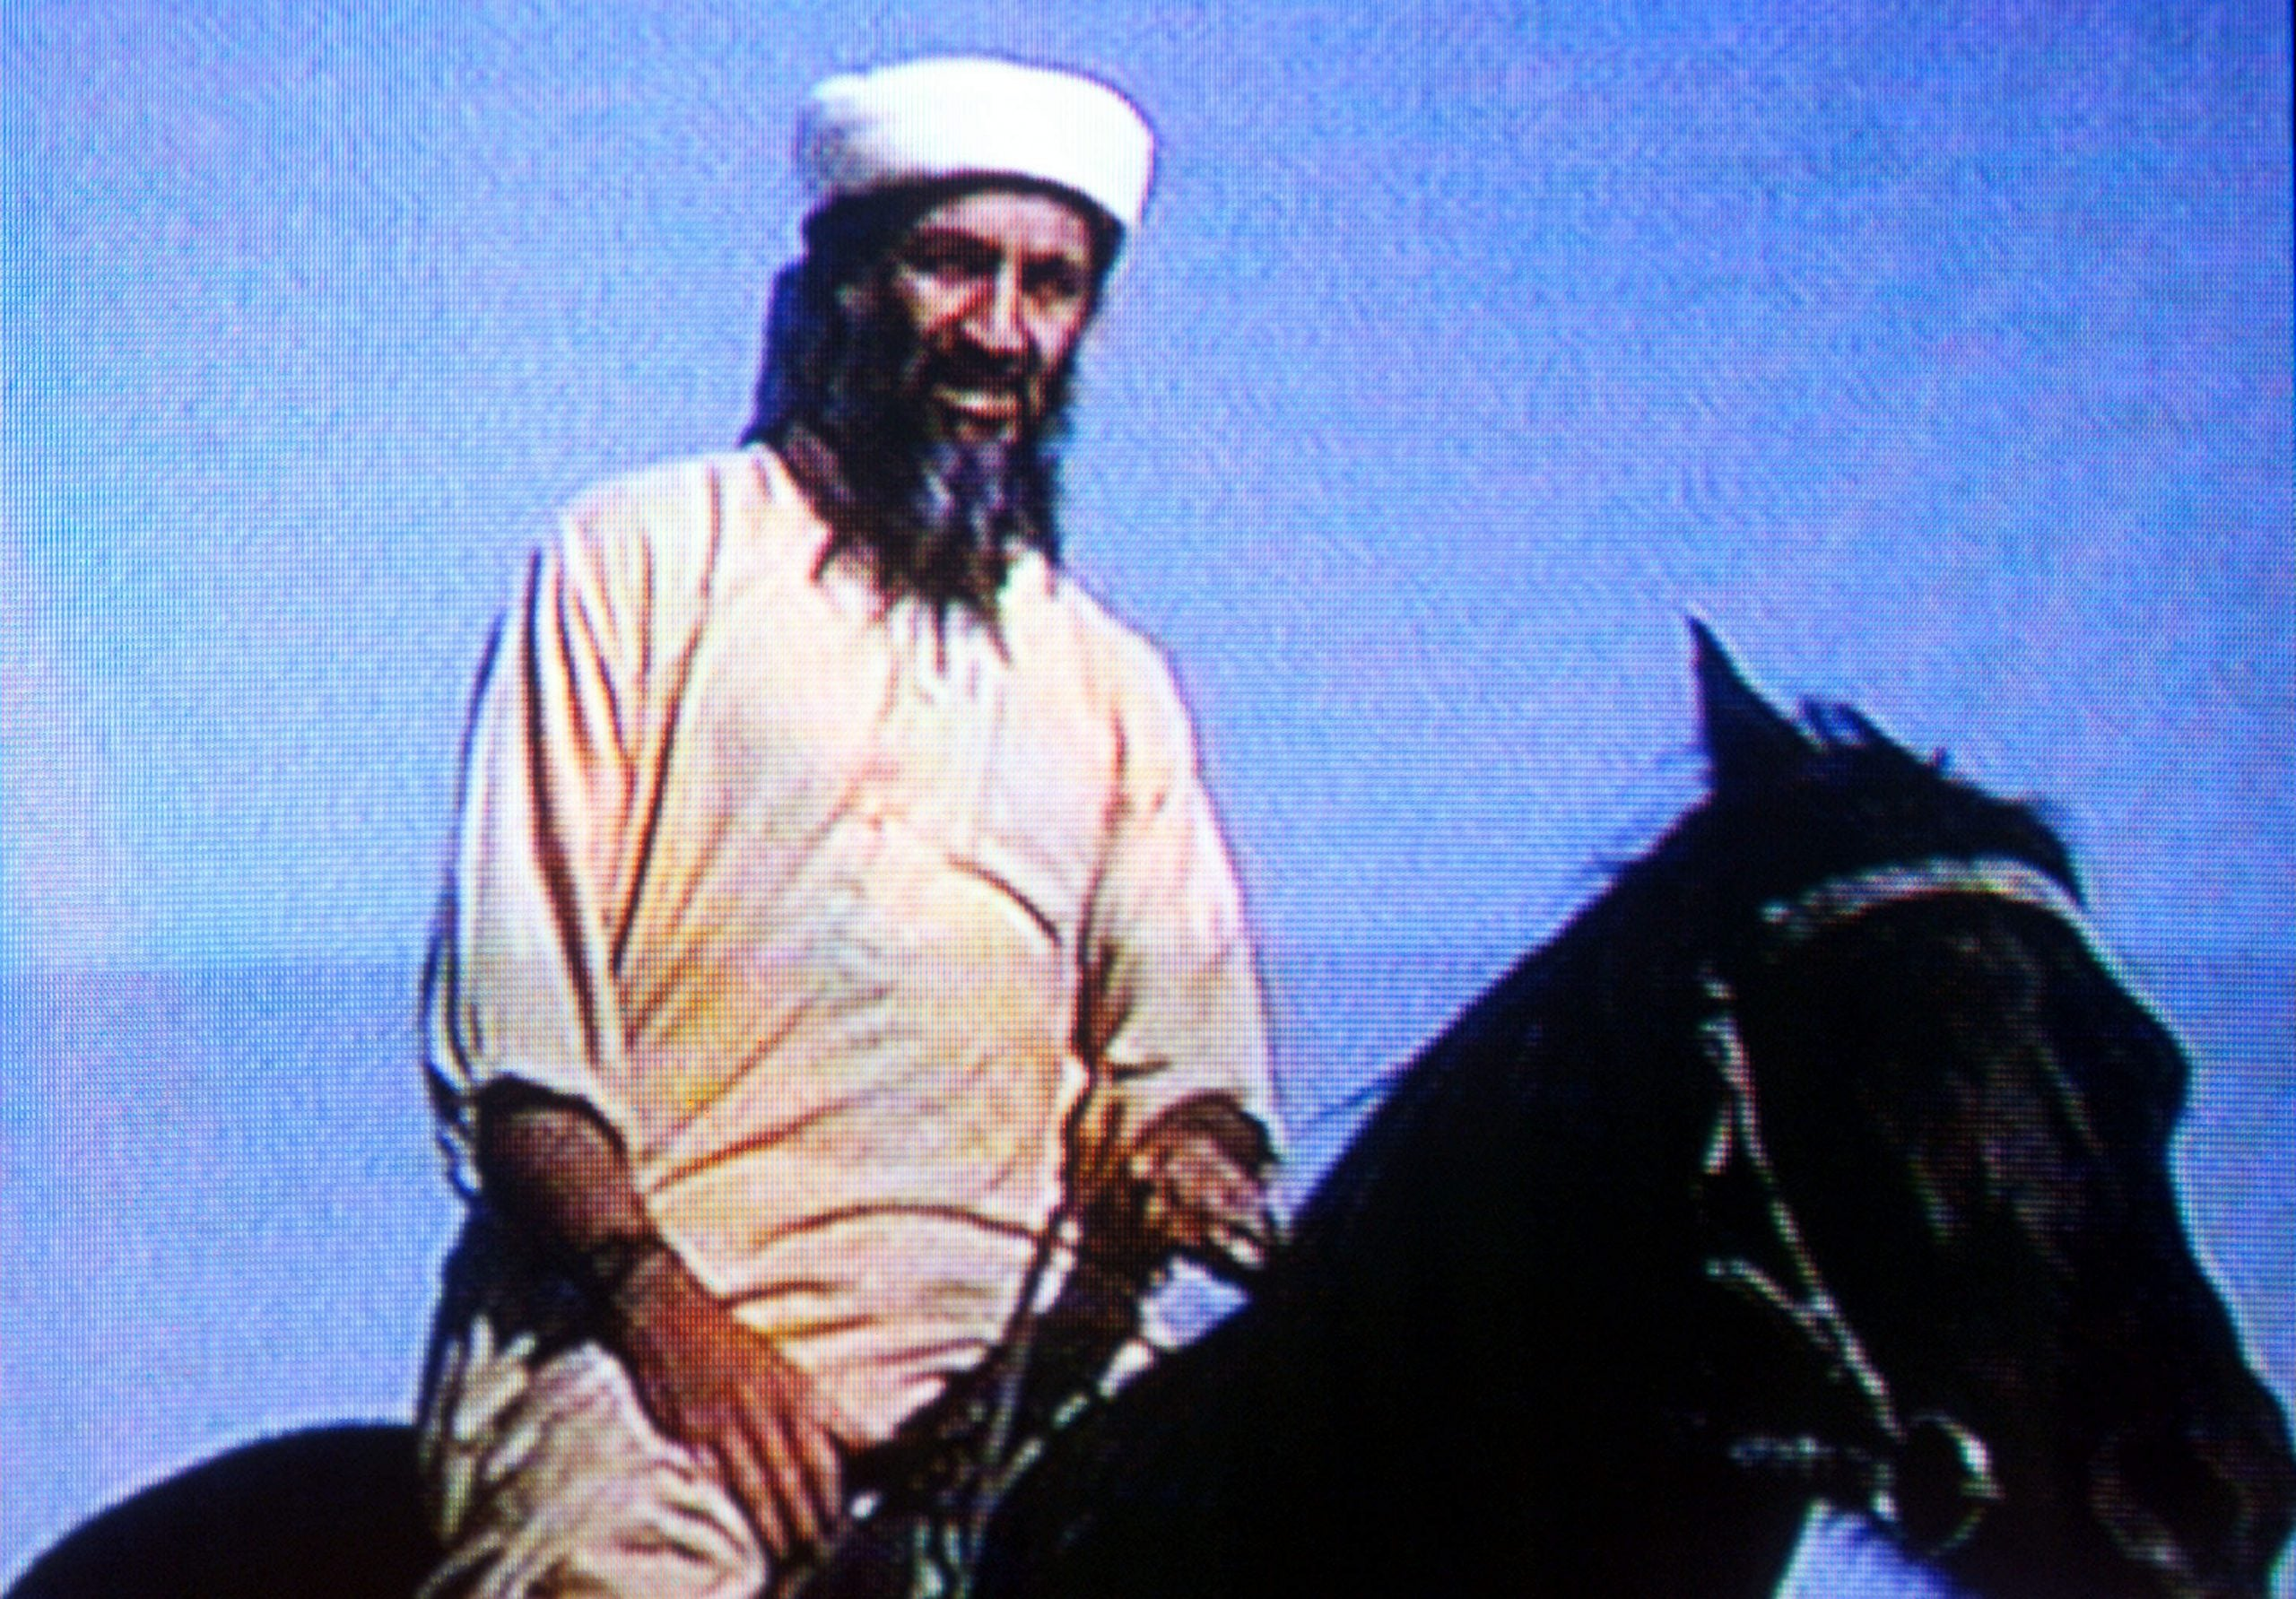 What we learned about Osama bin Laden from the contents of his computer